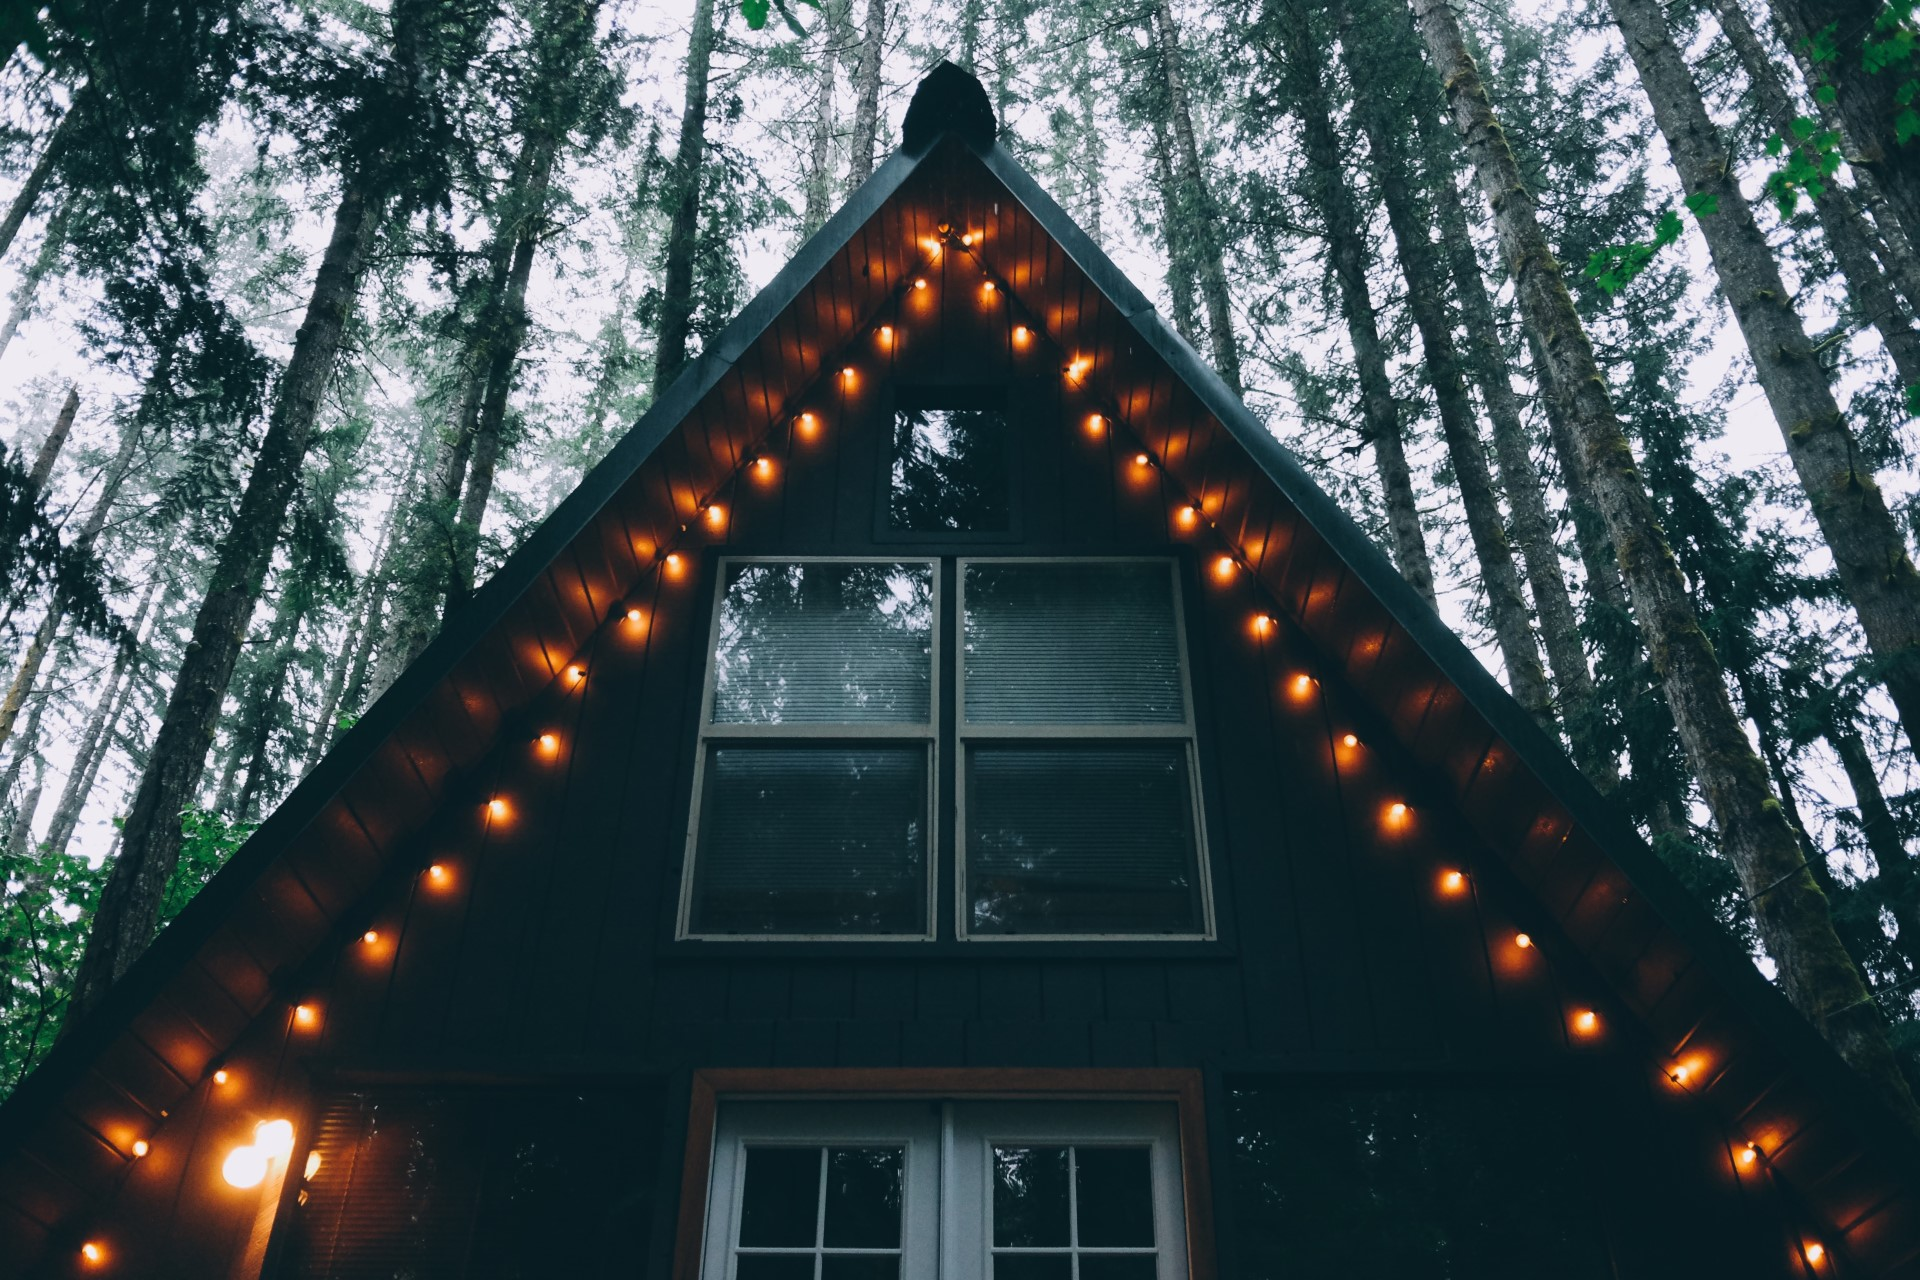 How to Make Outdoor Holiday Decorations More Sustainable | Christmas decorations don't have to be so bad for the environment, so let's green them up.